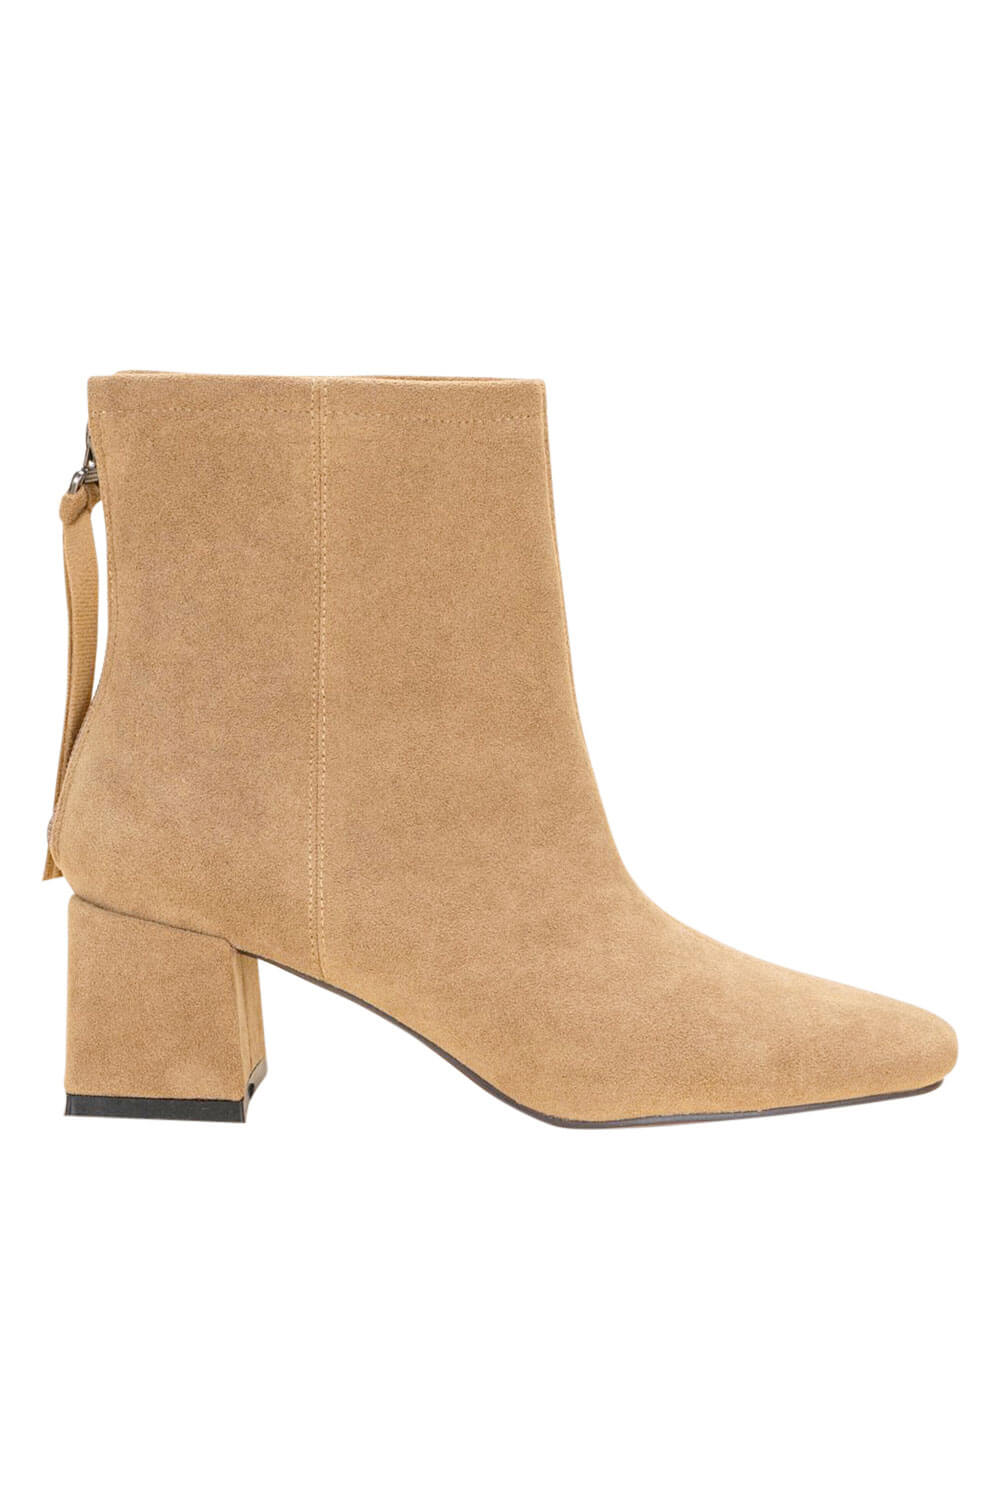 Kadee Square Toe Block Heel khaki side MILK MONEY